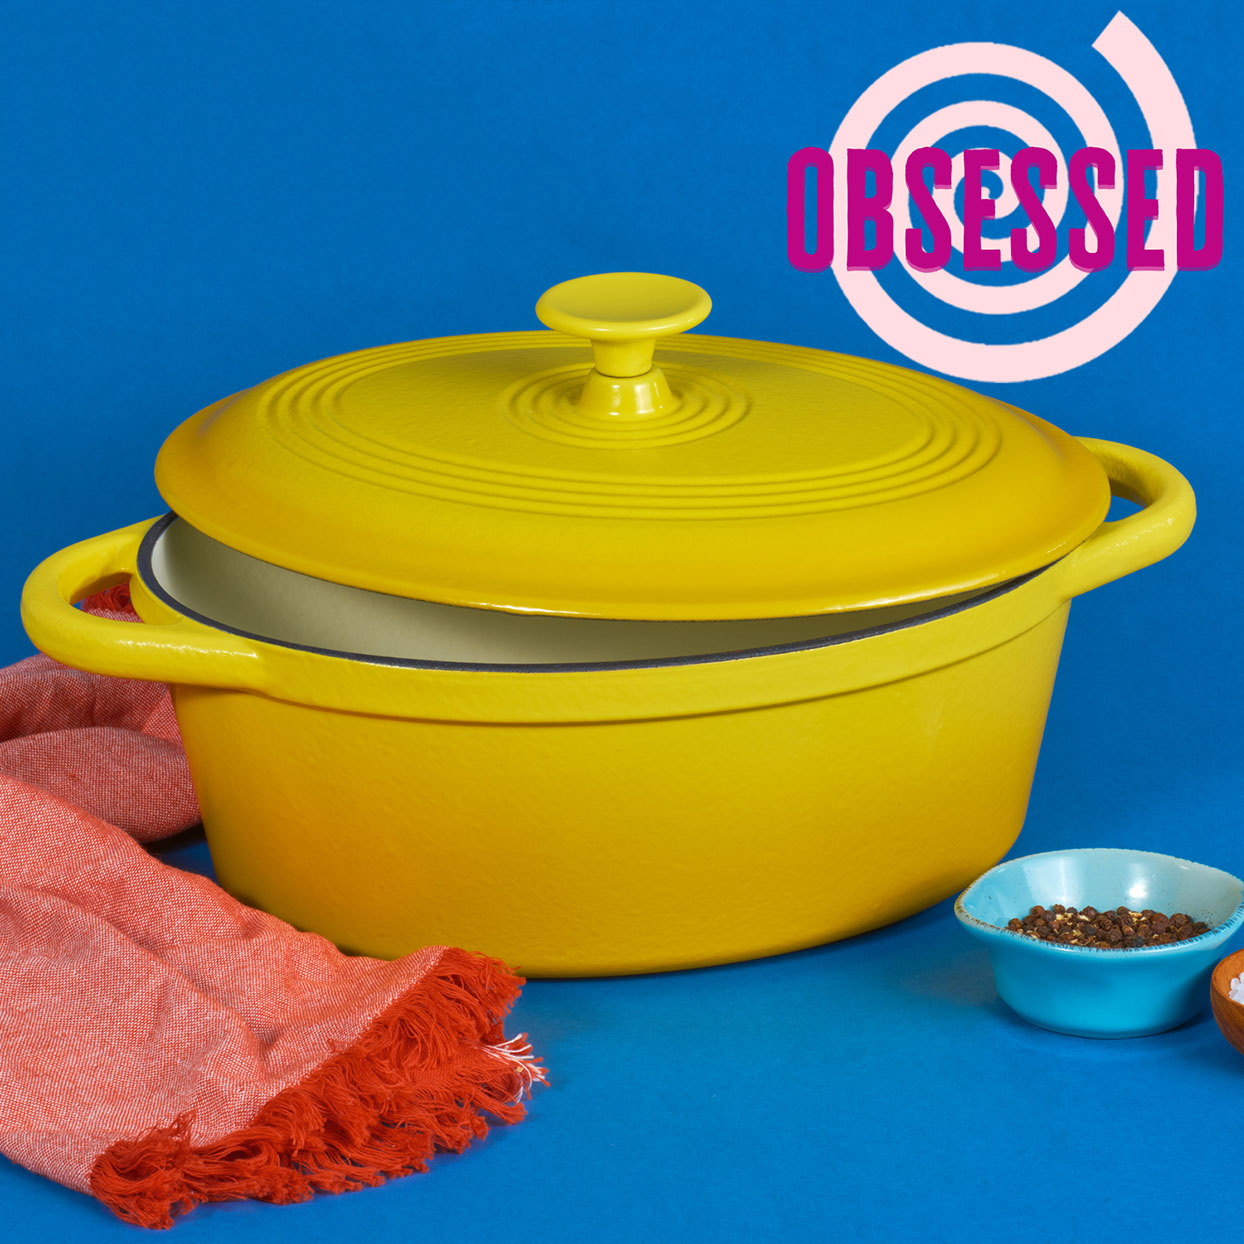 This Le Creuset Dutch Oven Dupe Is Only $25—and I Need One ASAP